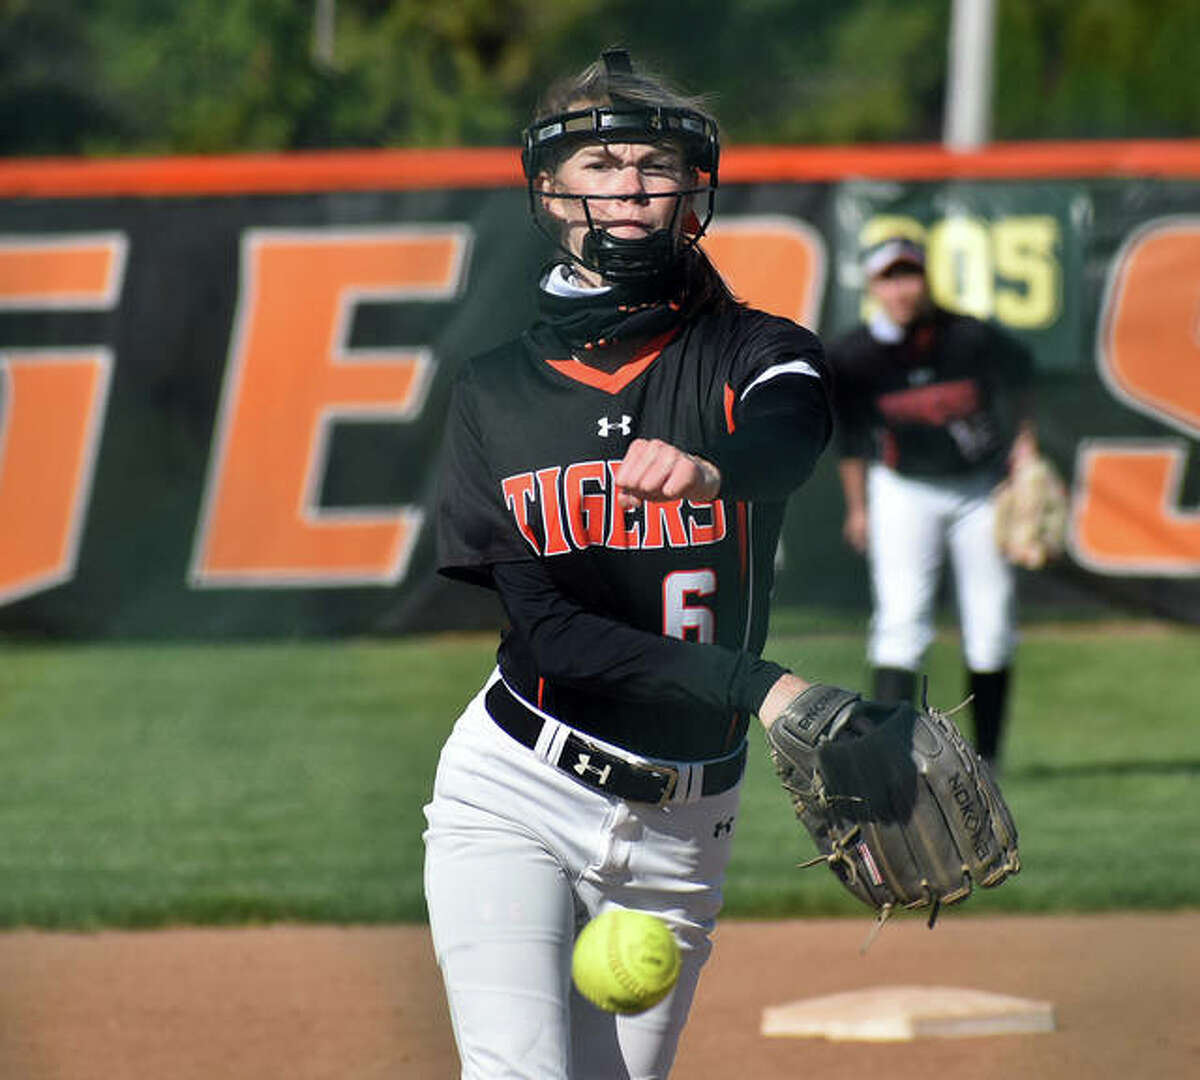 Edwardsville's Ryliegh Owens delivers the first pitch of the game and the 2021 season.